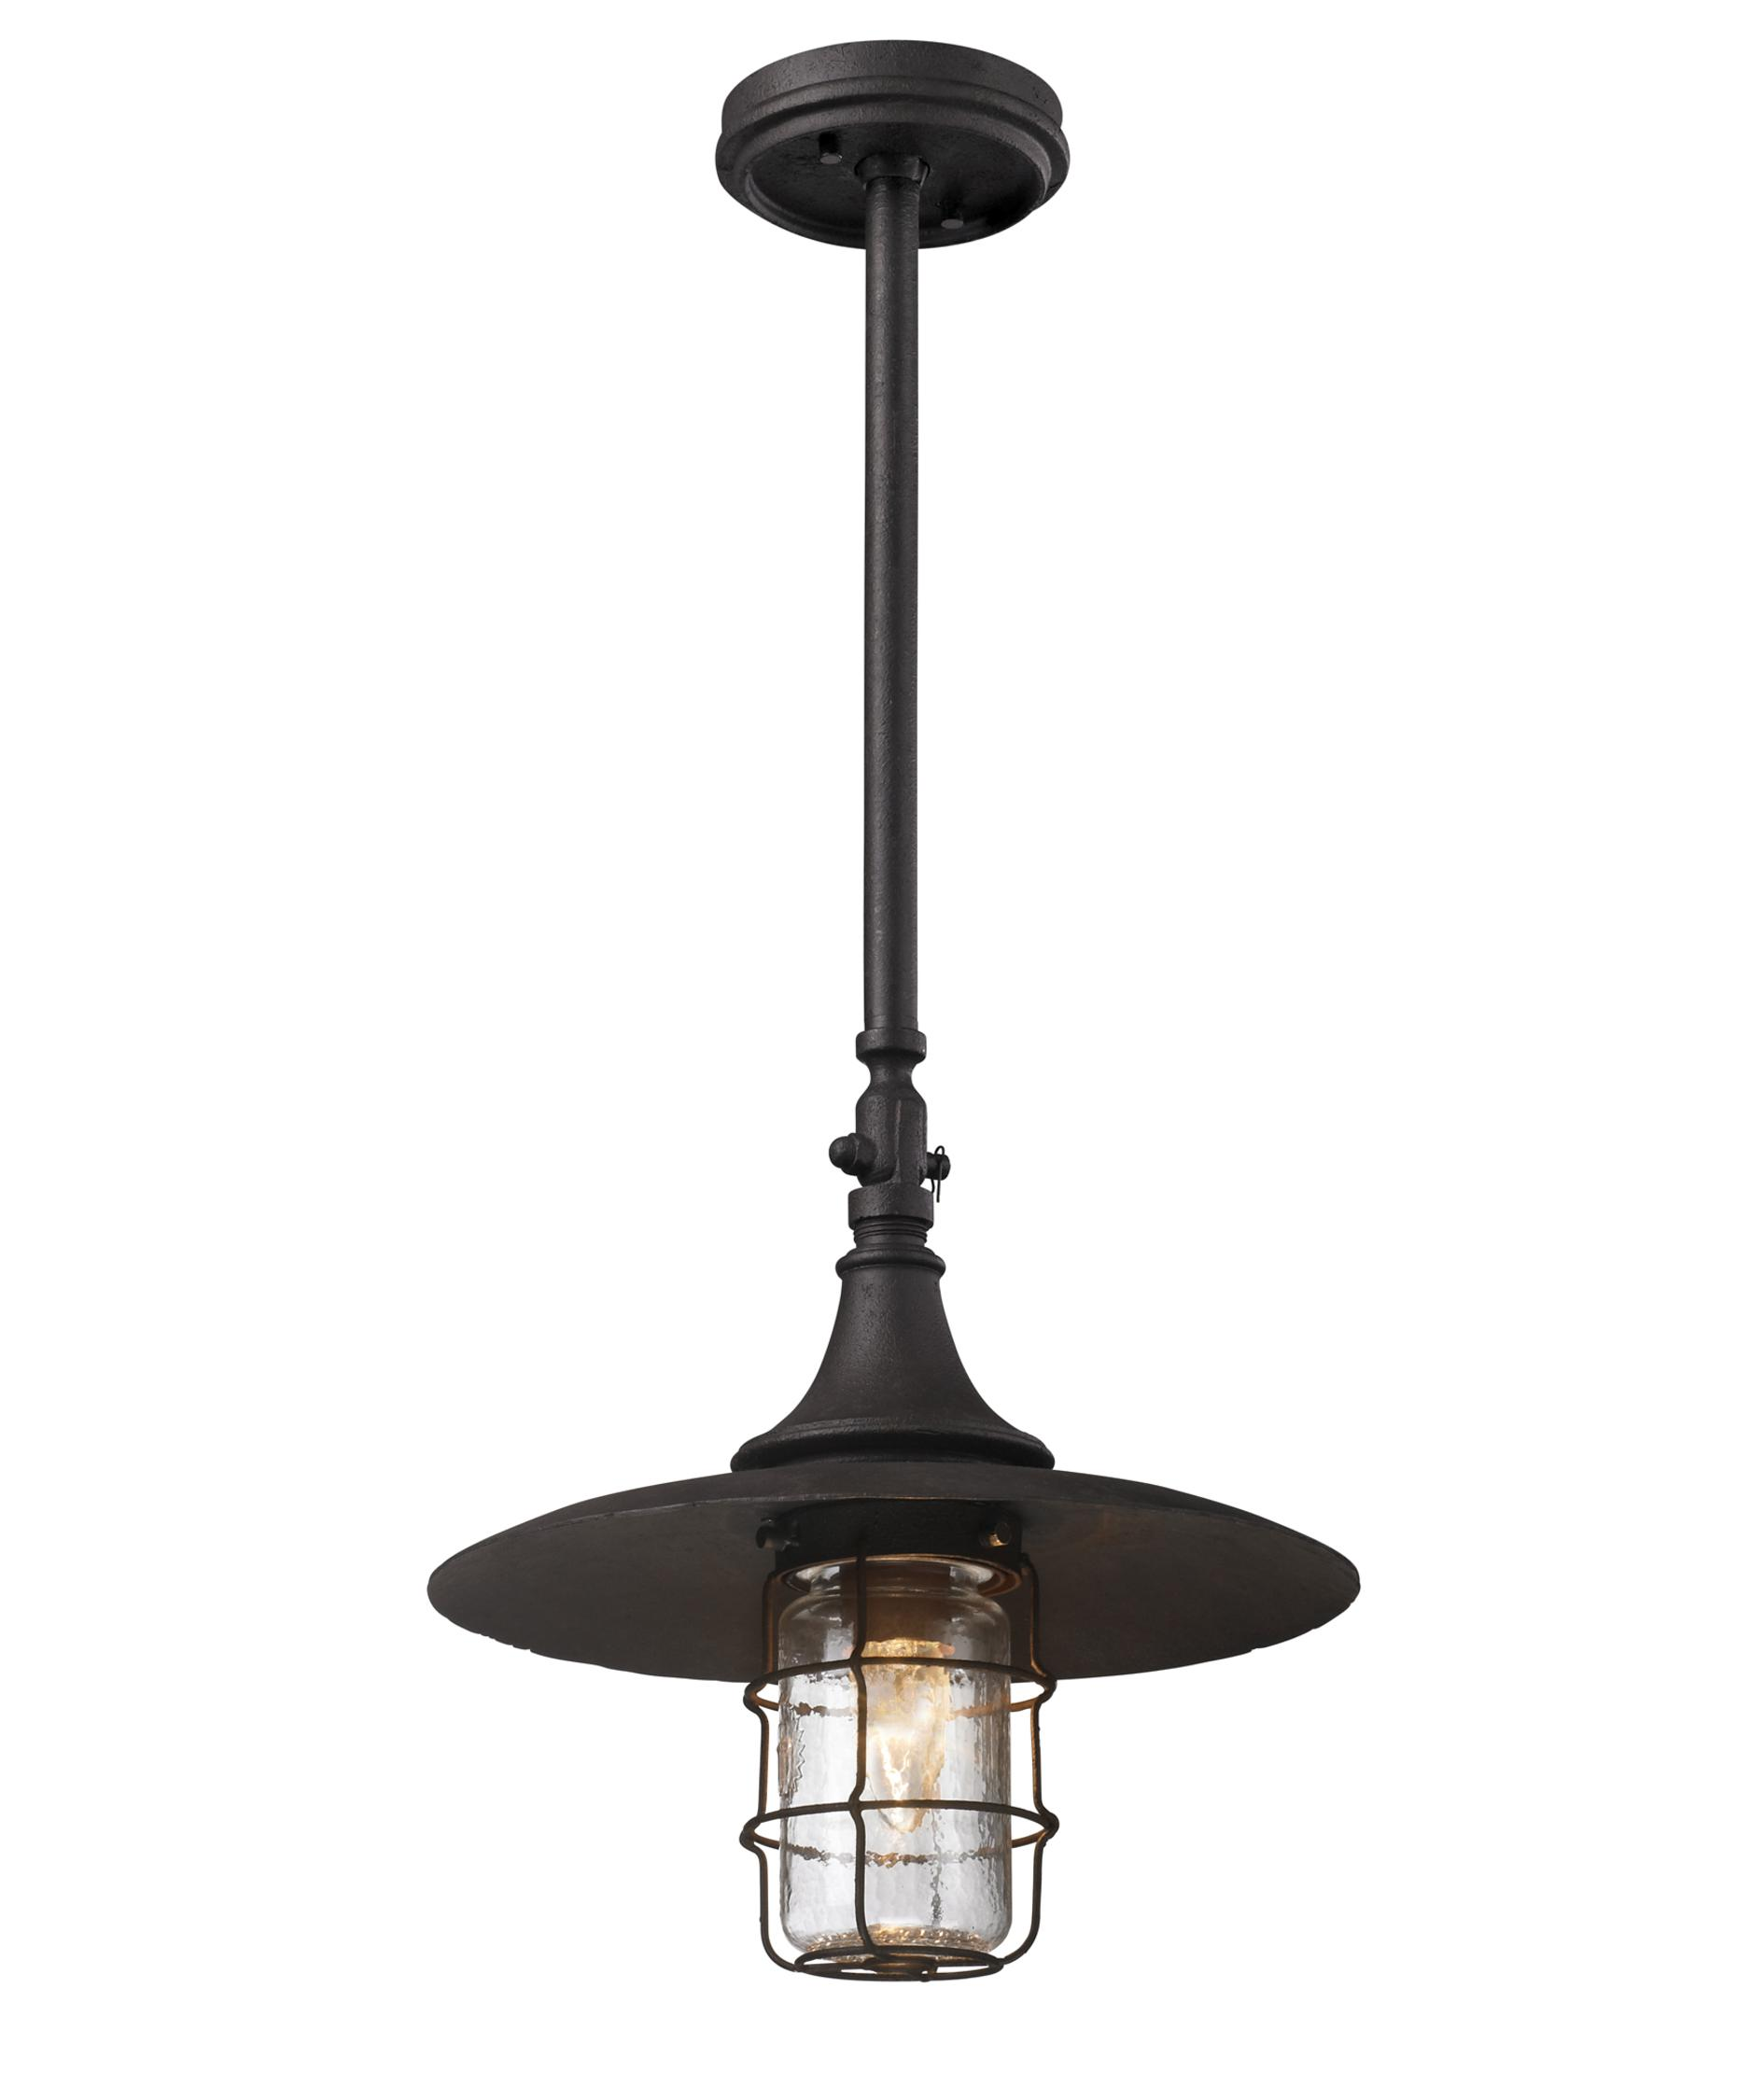 Troy Lighting F3228 Allegany 13 Inch Wide 1 Light Outdoor Hanging